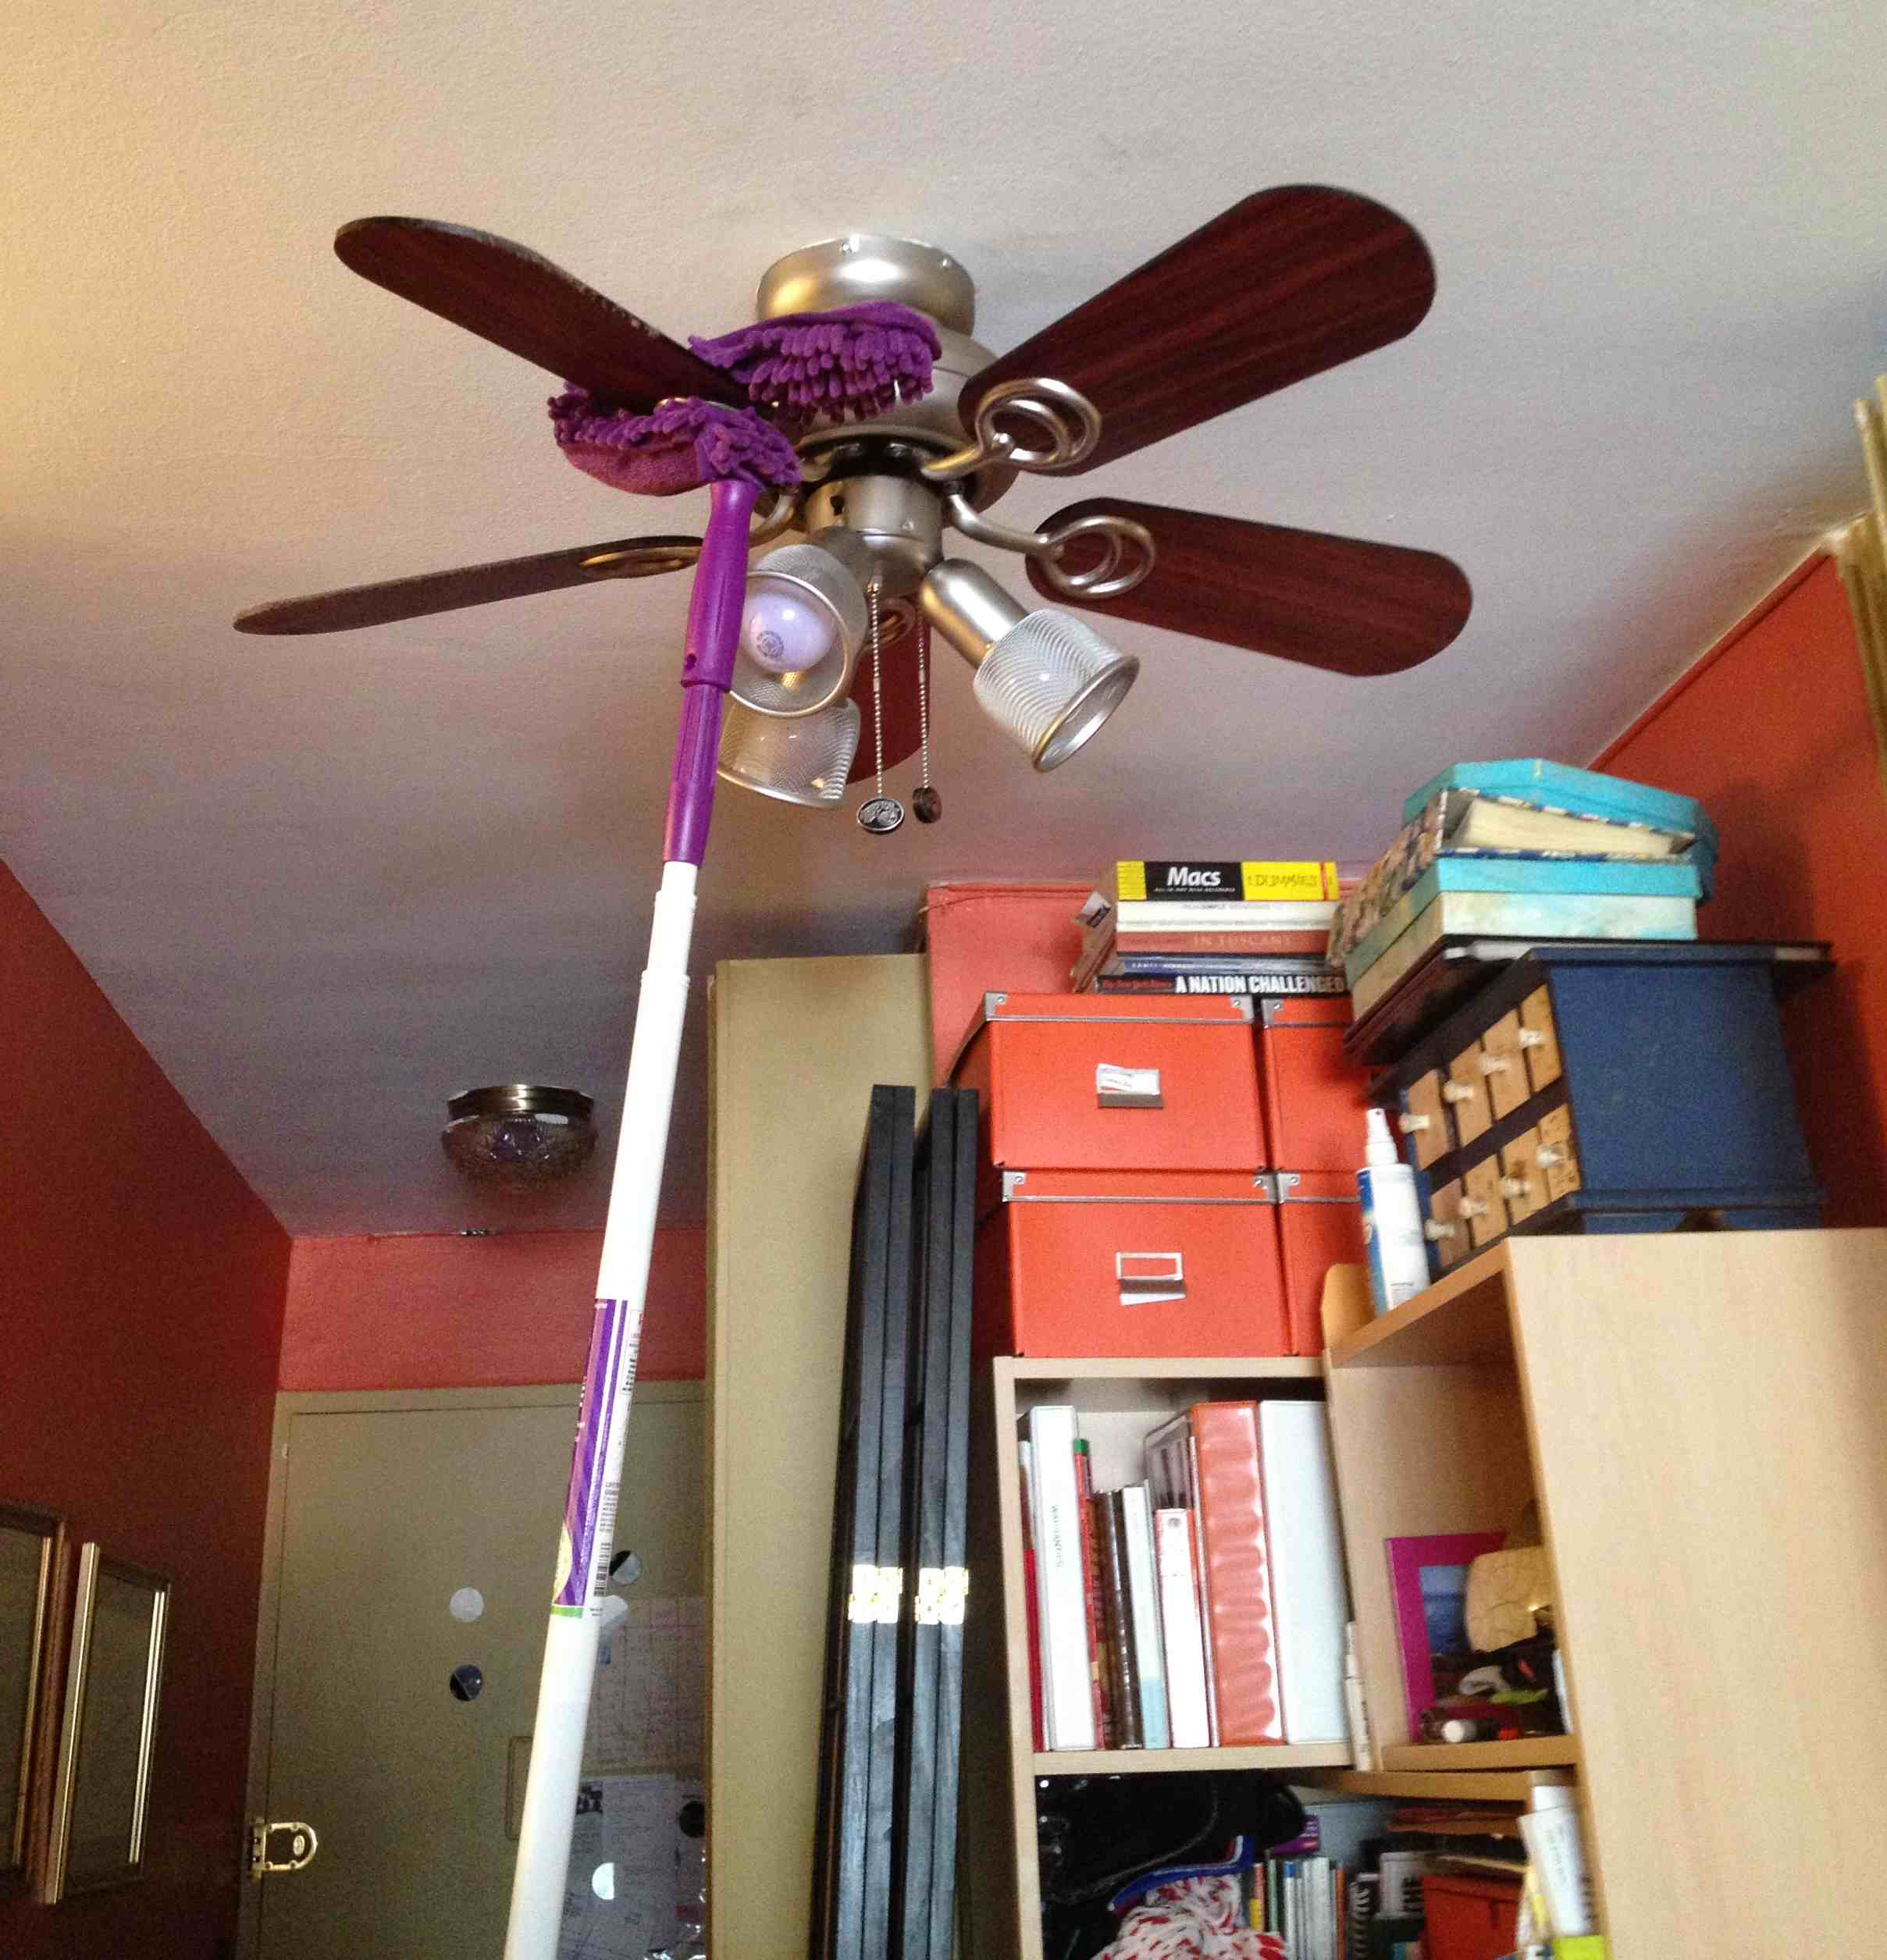 best of tool and fanmaid ceiling duster cleaner fan beautiful